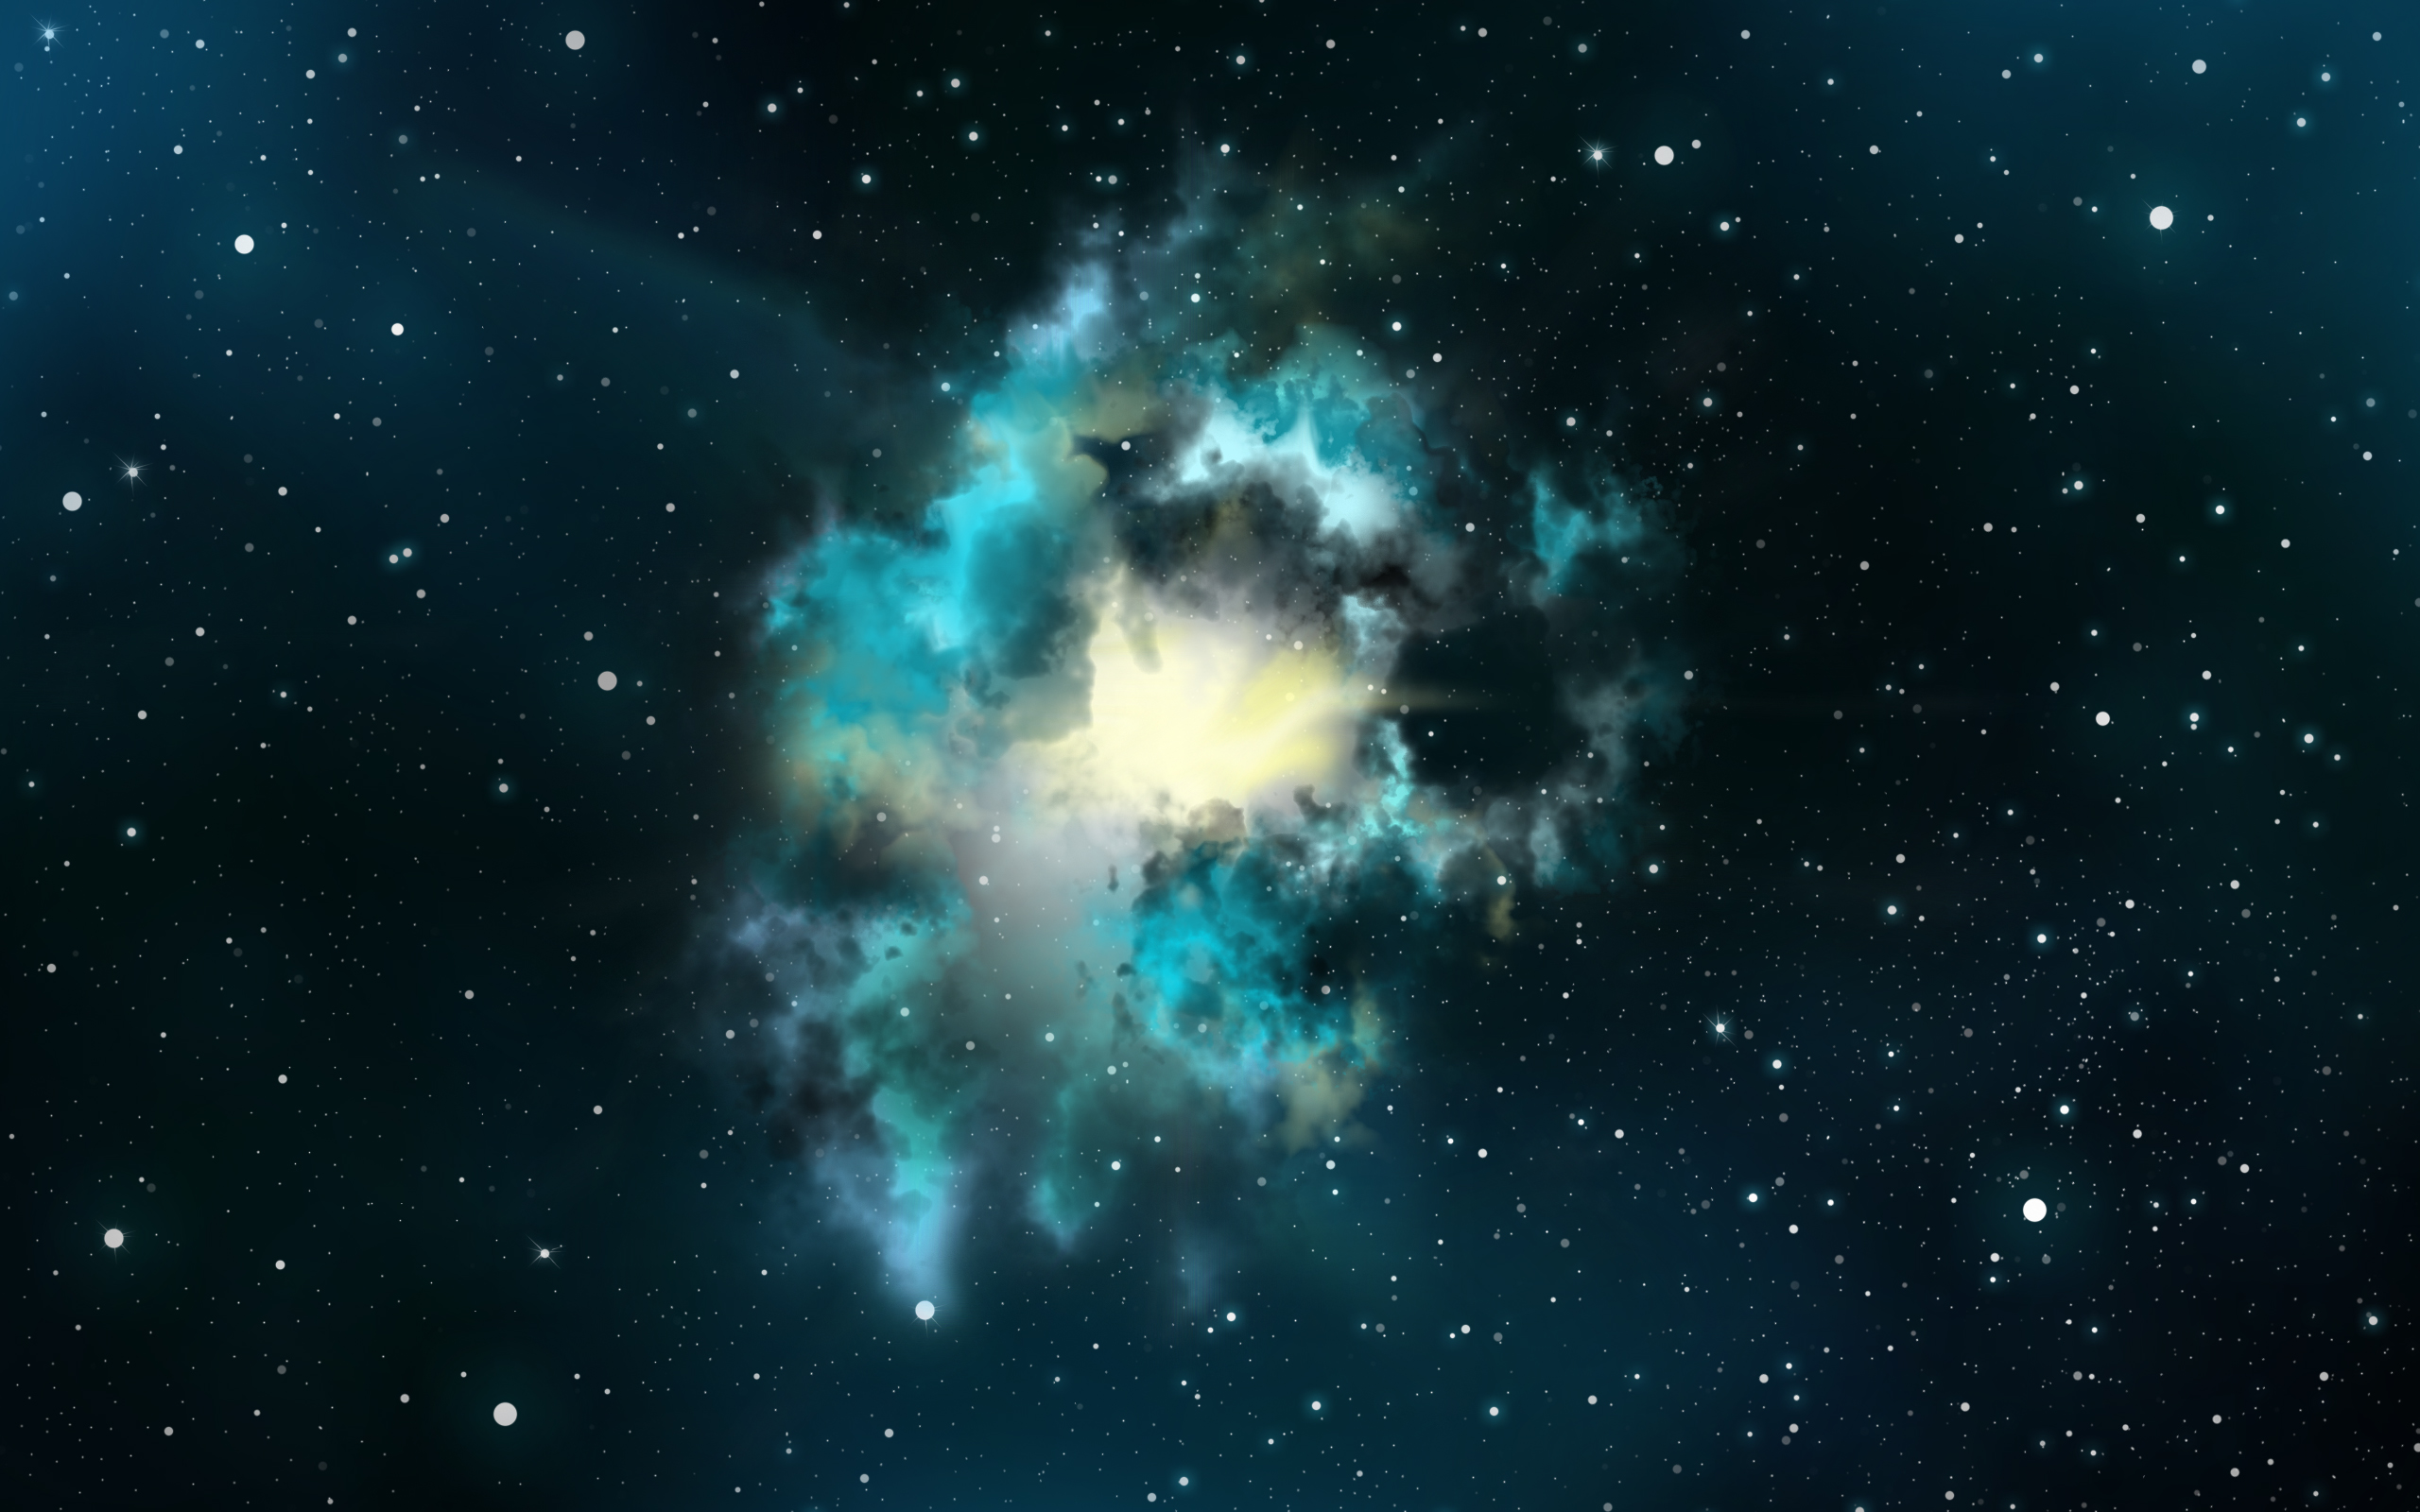 nebula hd wallpaper optical illusions - photo #49